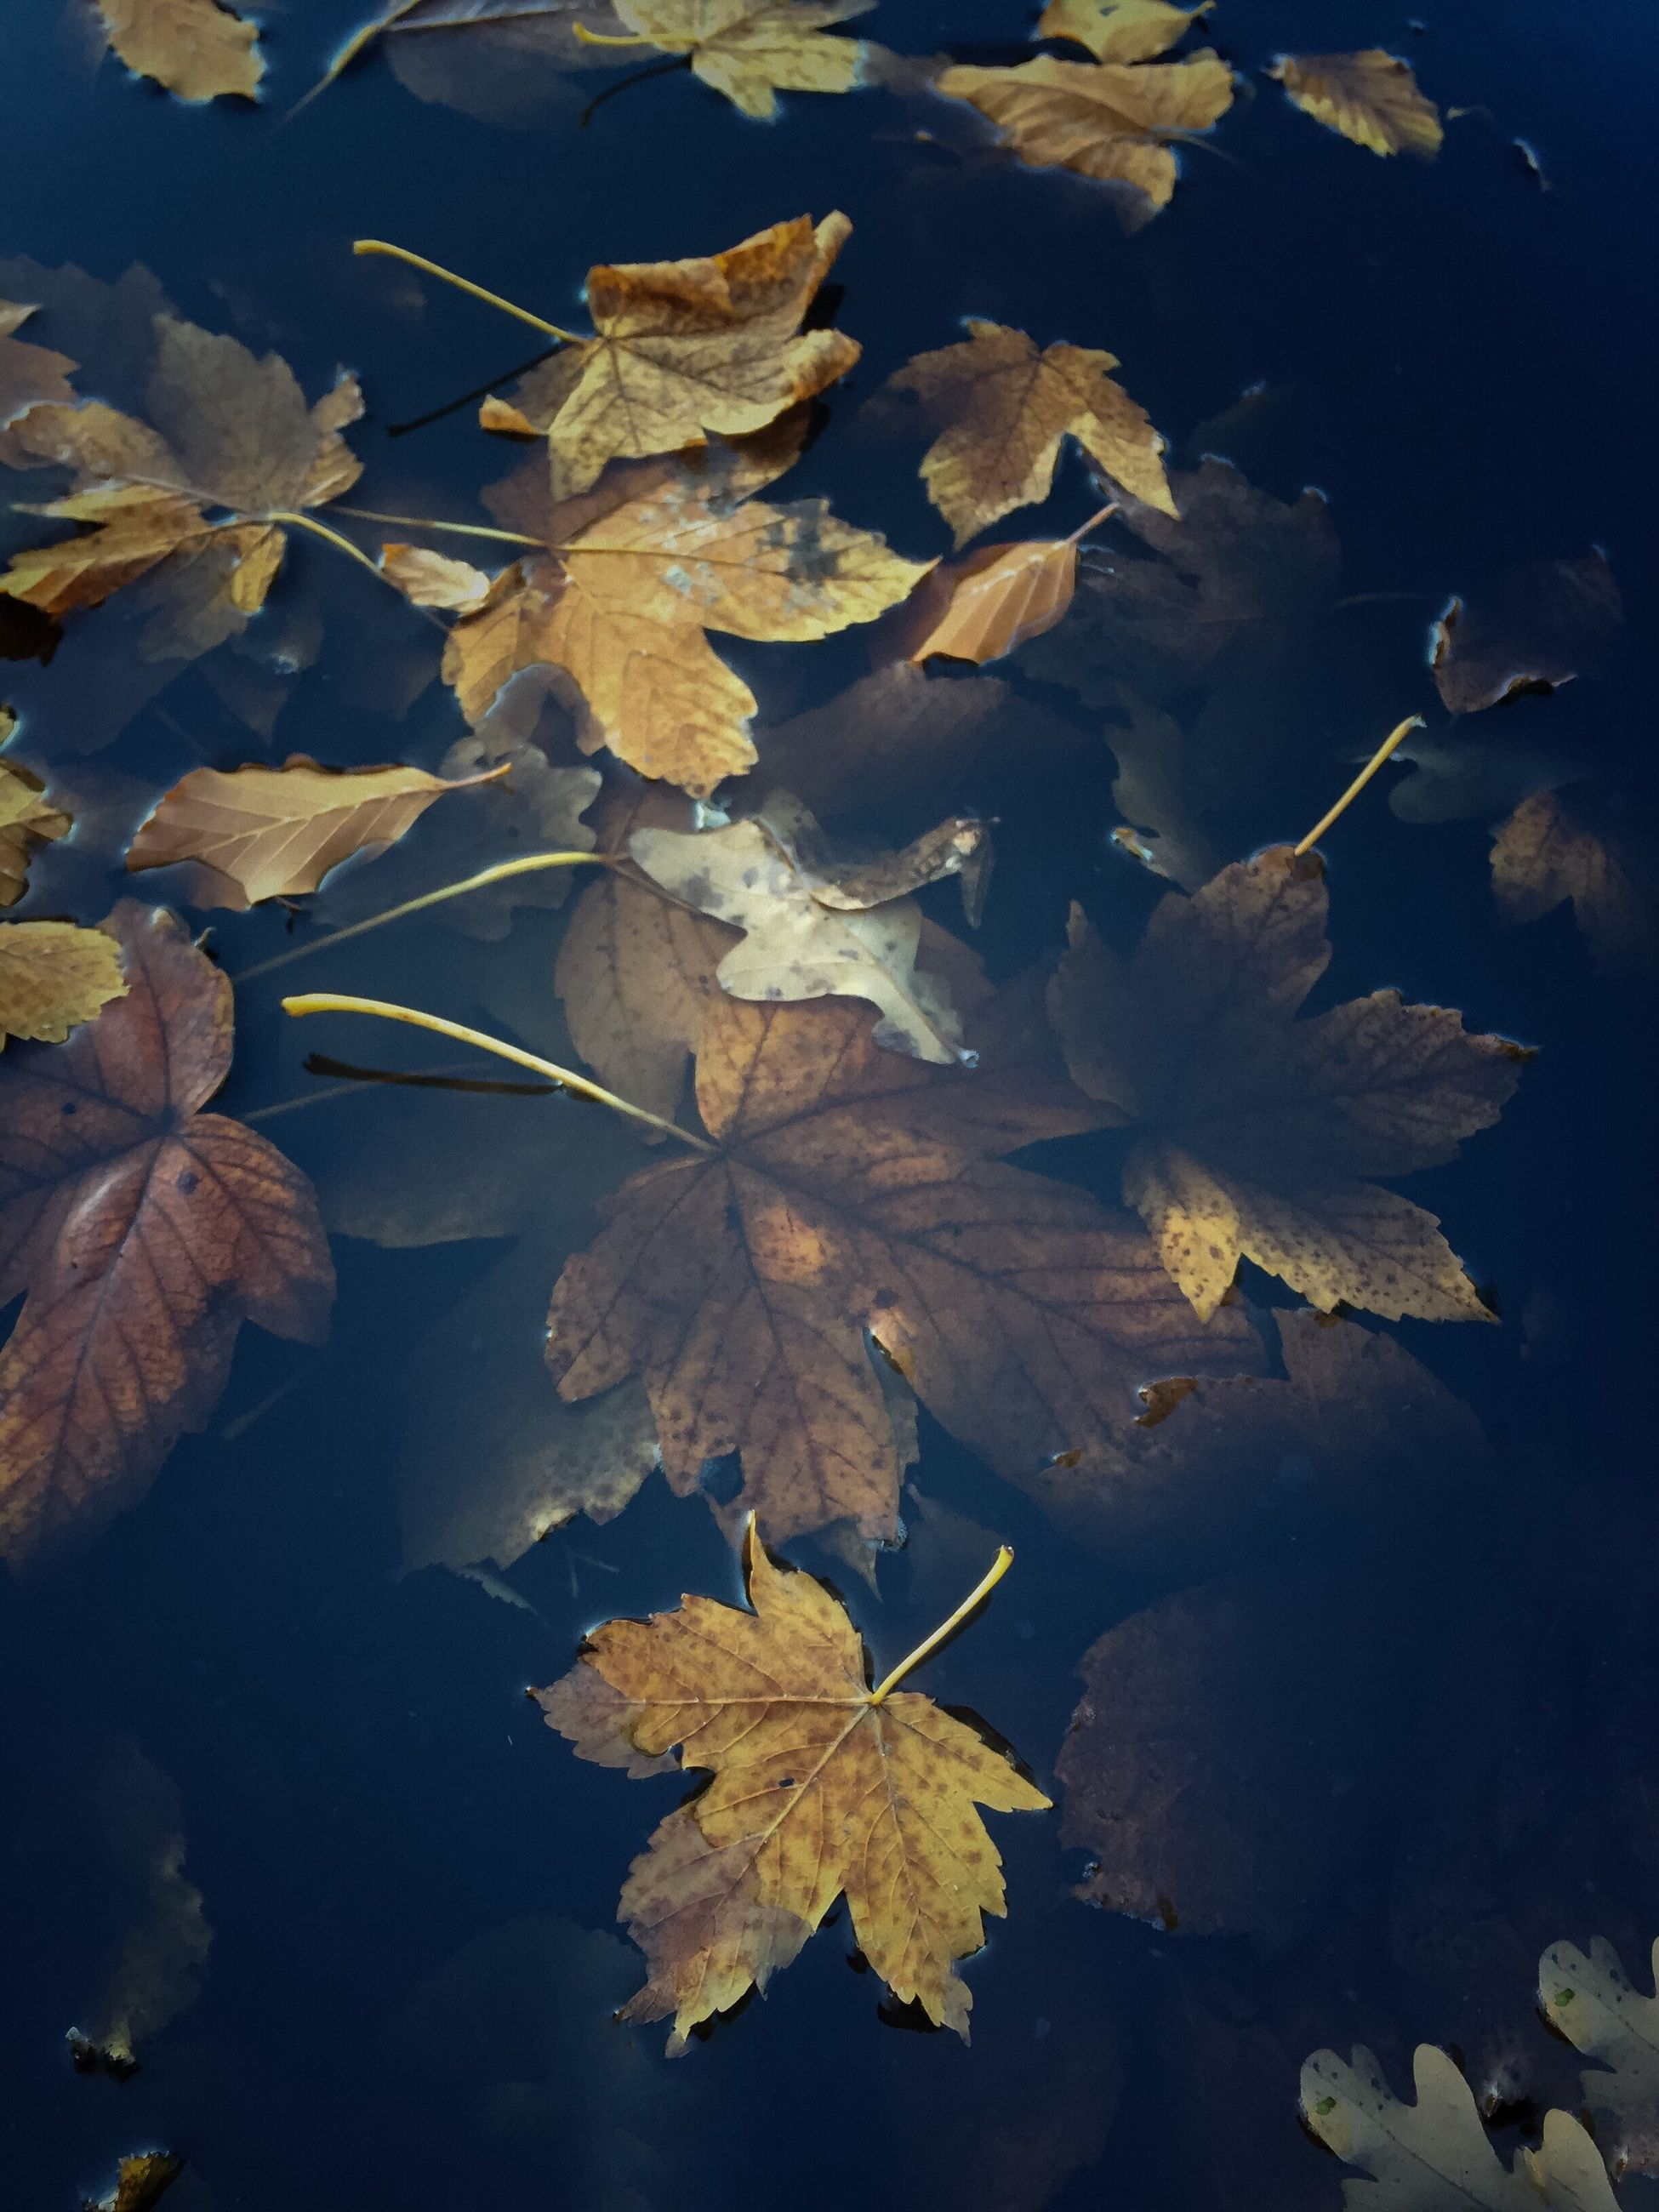 leaf, autumn, nature, change, plant, beauty in nature, no people, tree, maple leaf, outdoors, close-up, scenics, landscape, water, floating on water, fragility, branch, day, maple